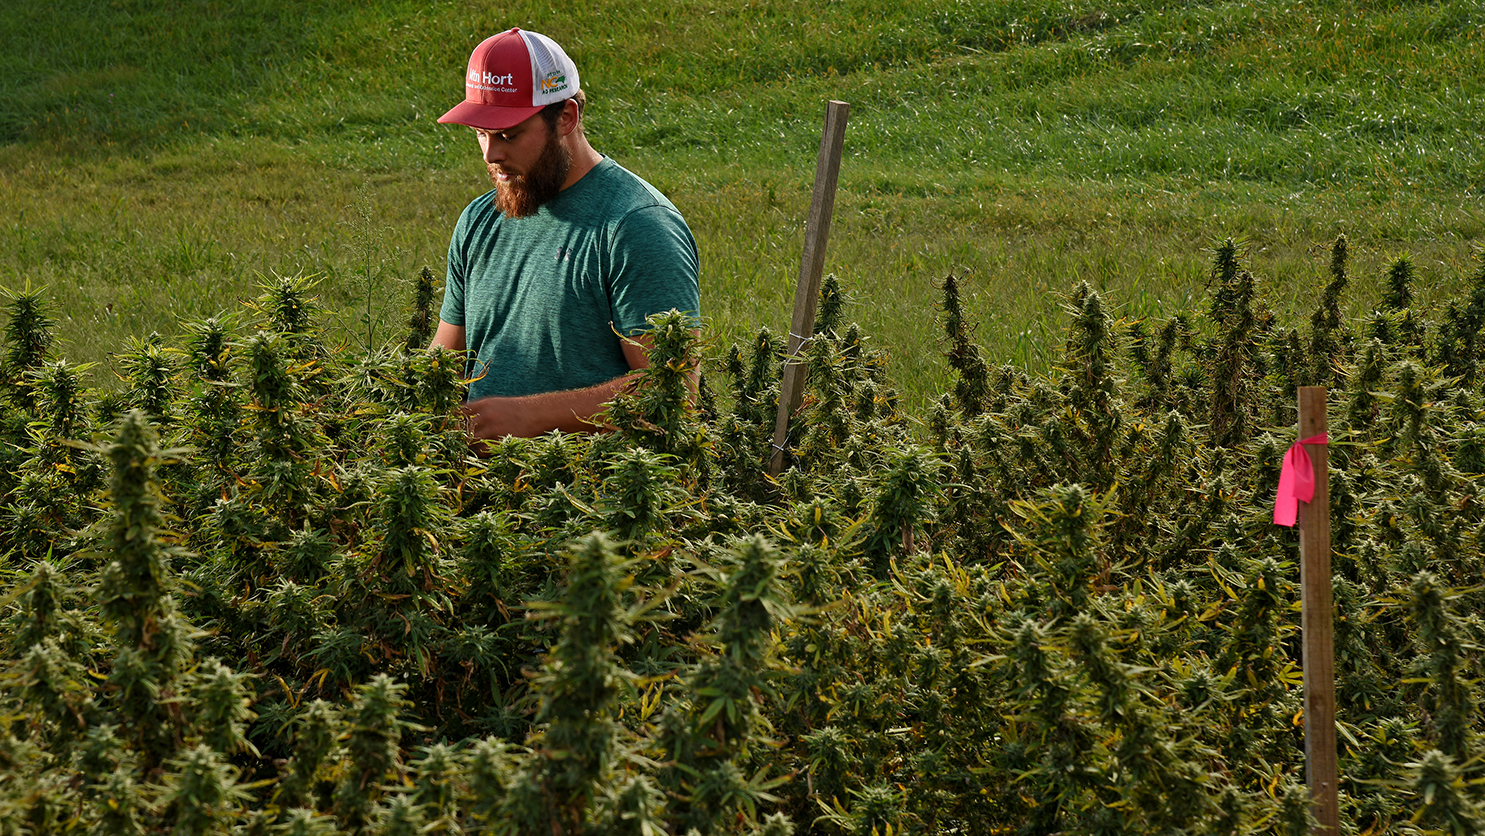 Man in a ball cap looks over a field of hemp